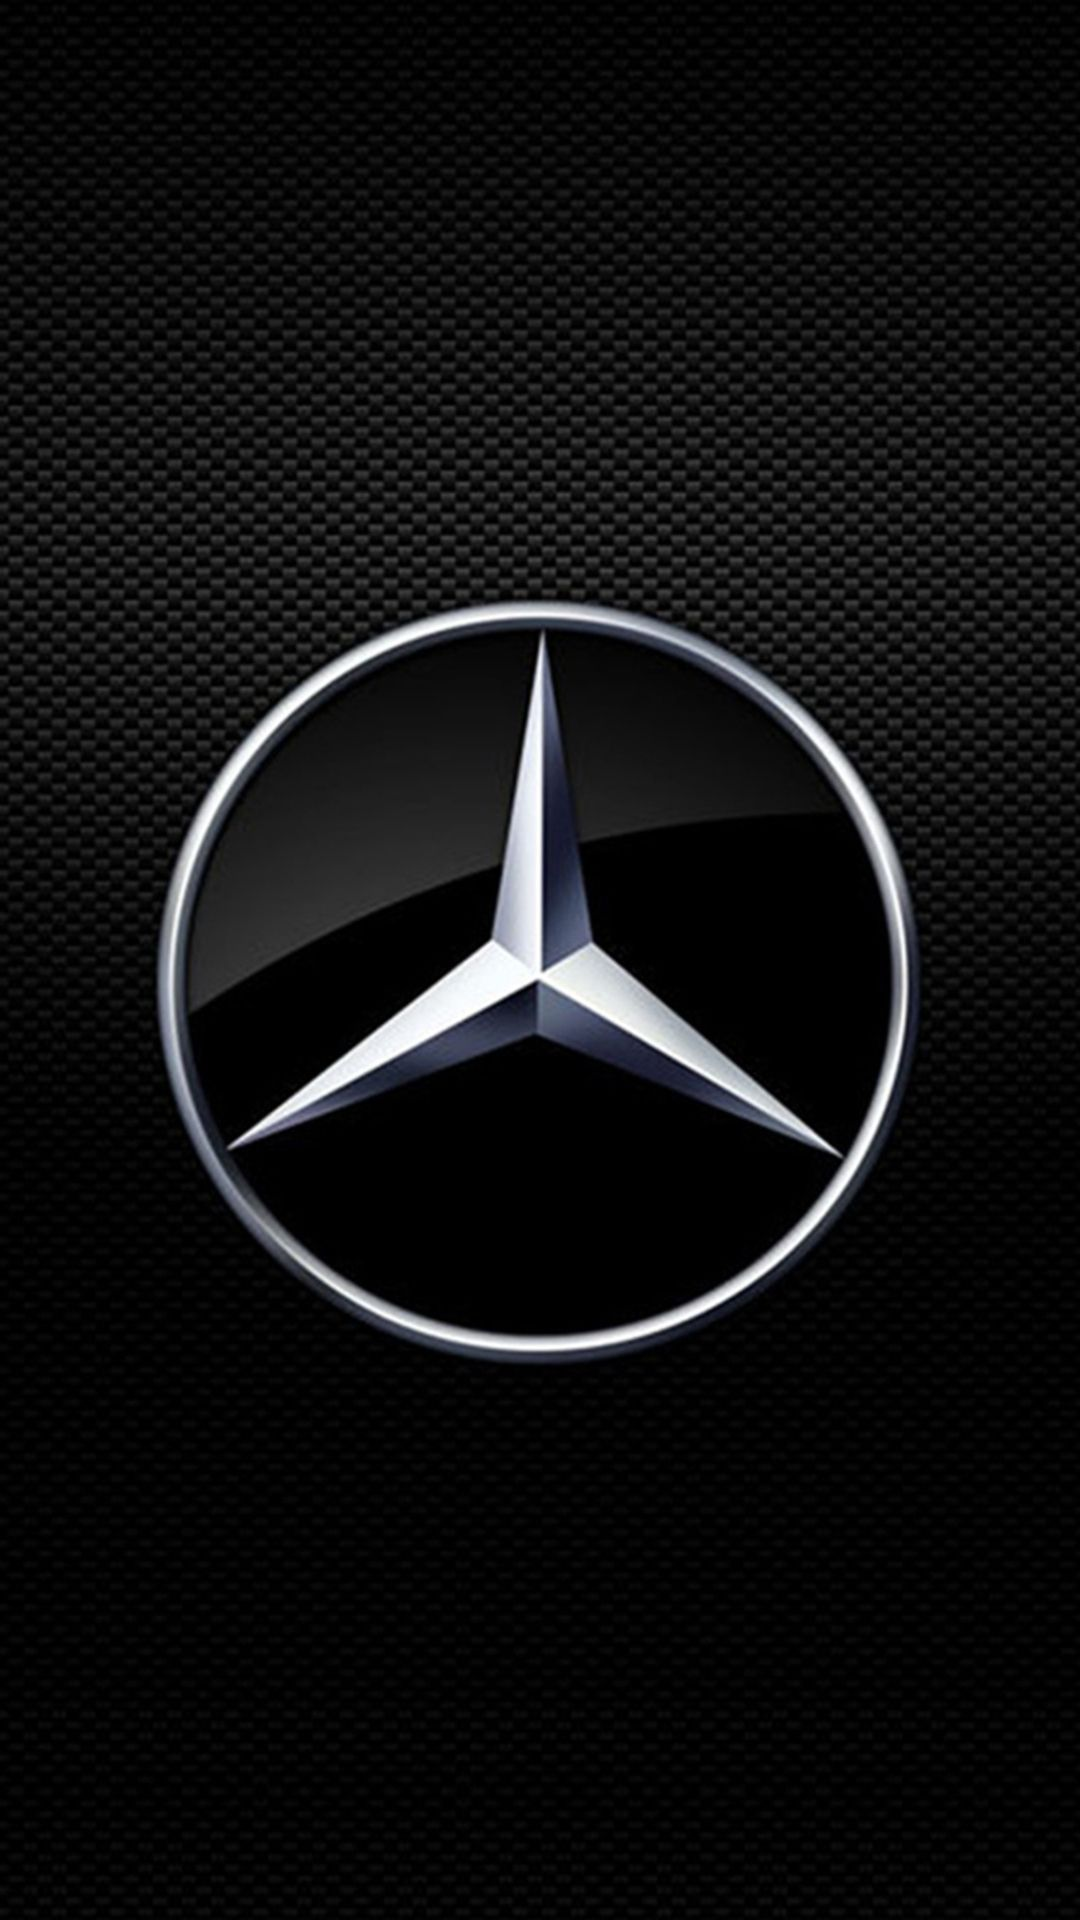 Mercedes-Benz Logo - Mercedes-Benz symbol, the ultimate symbol of quality, luxury and ...